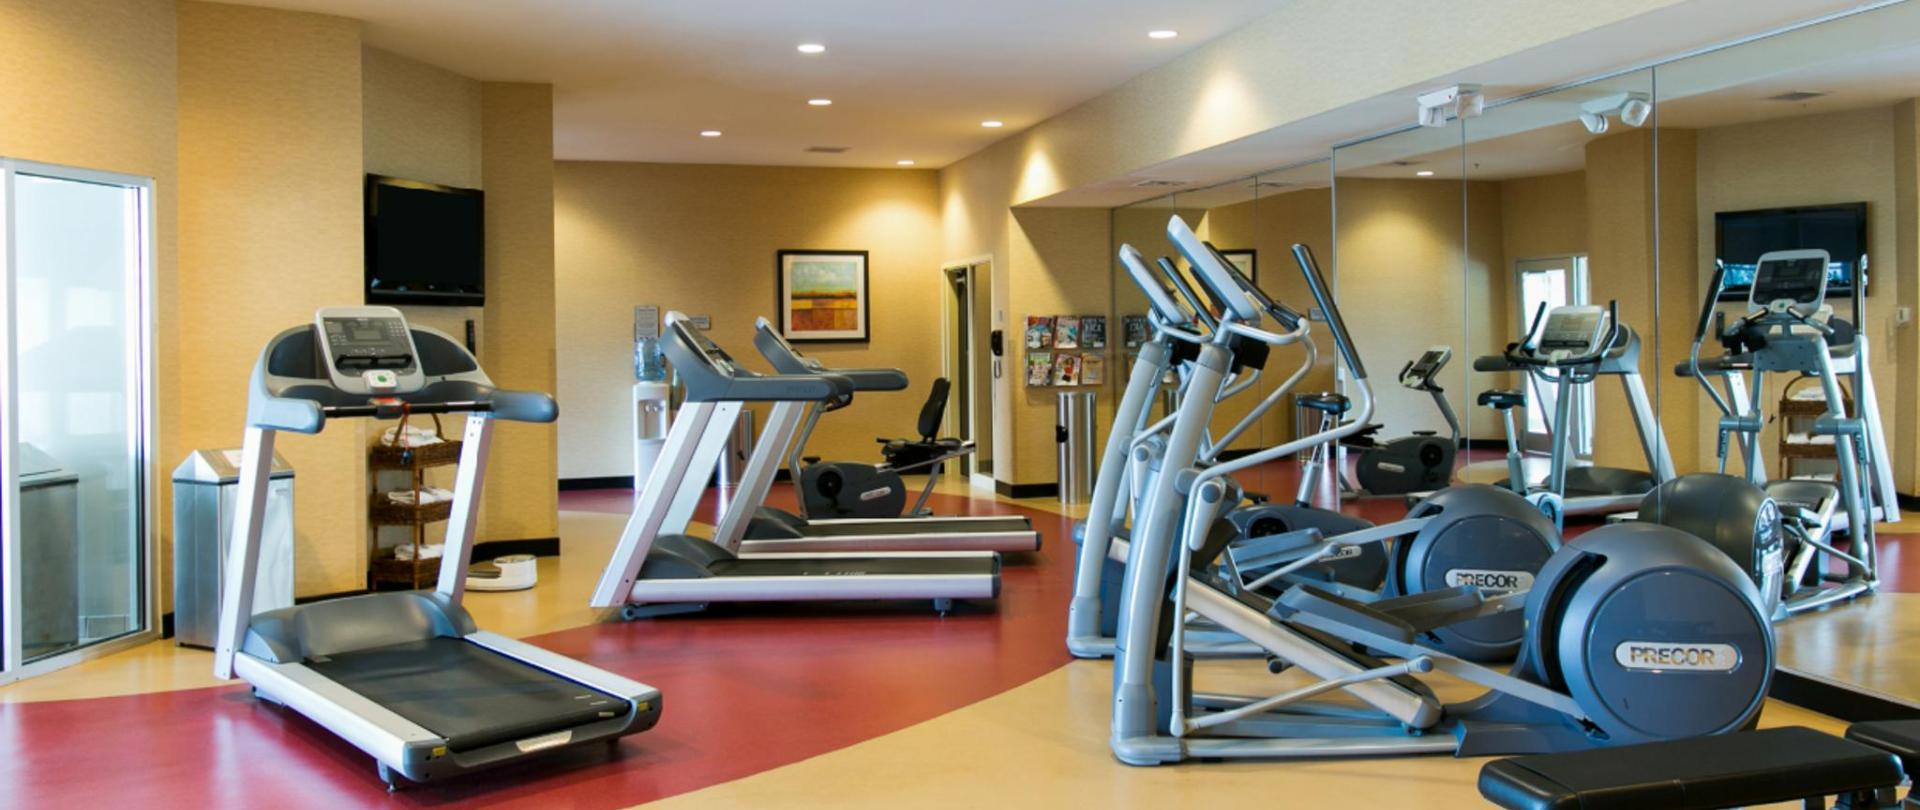 NC570 Fitness Center.PNG